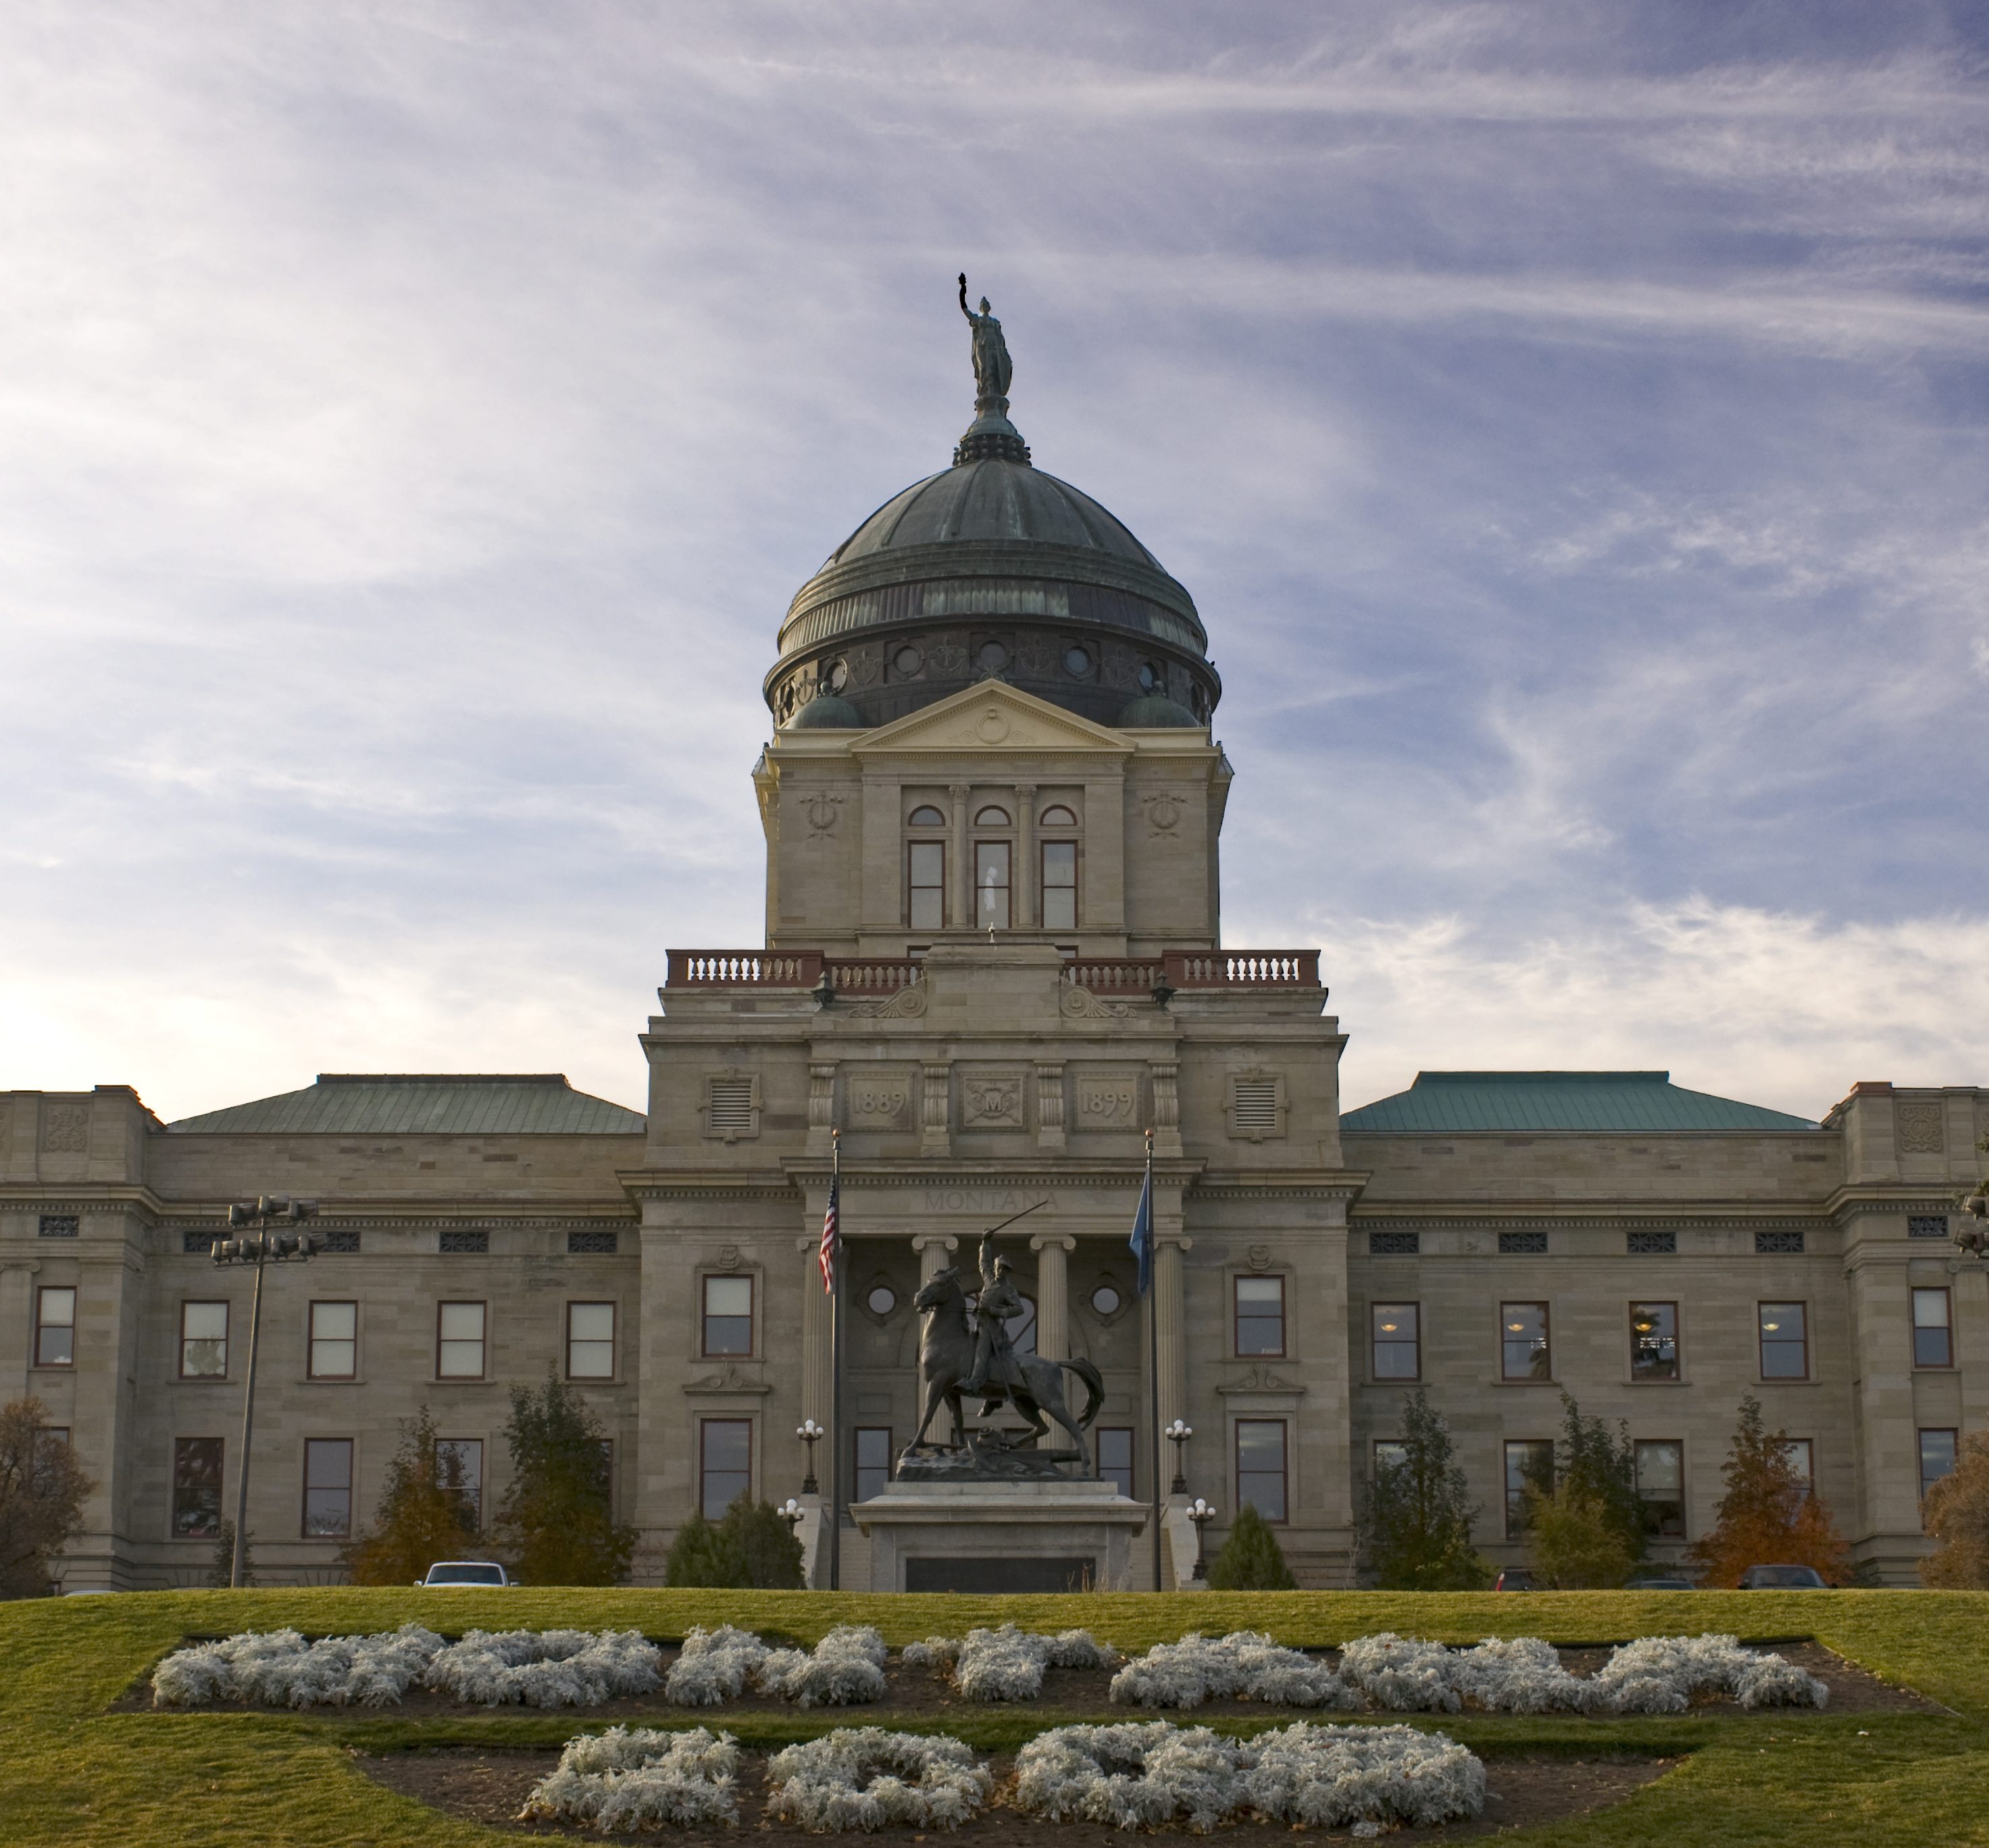 The Montana state capitol building located in Helena, Montana.